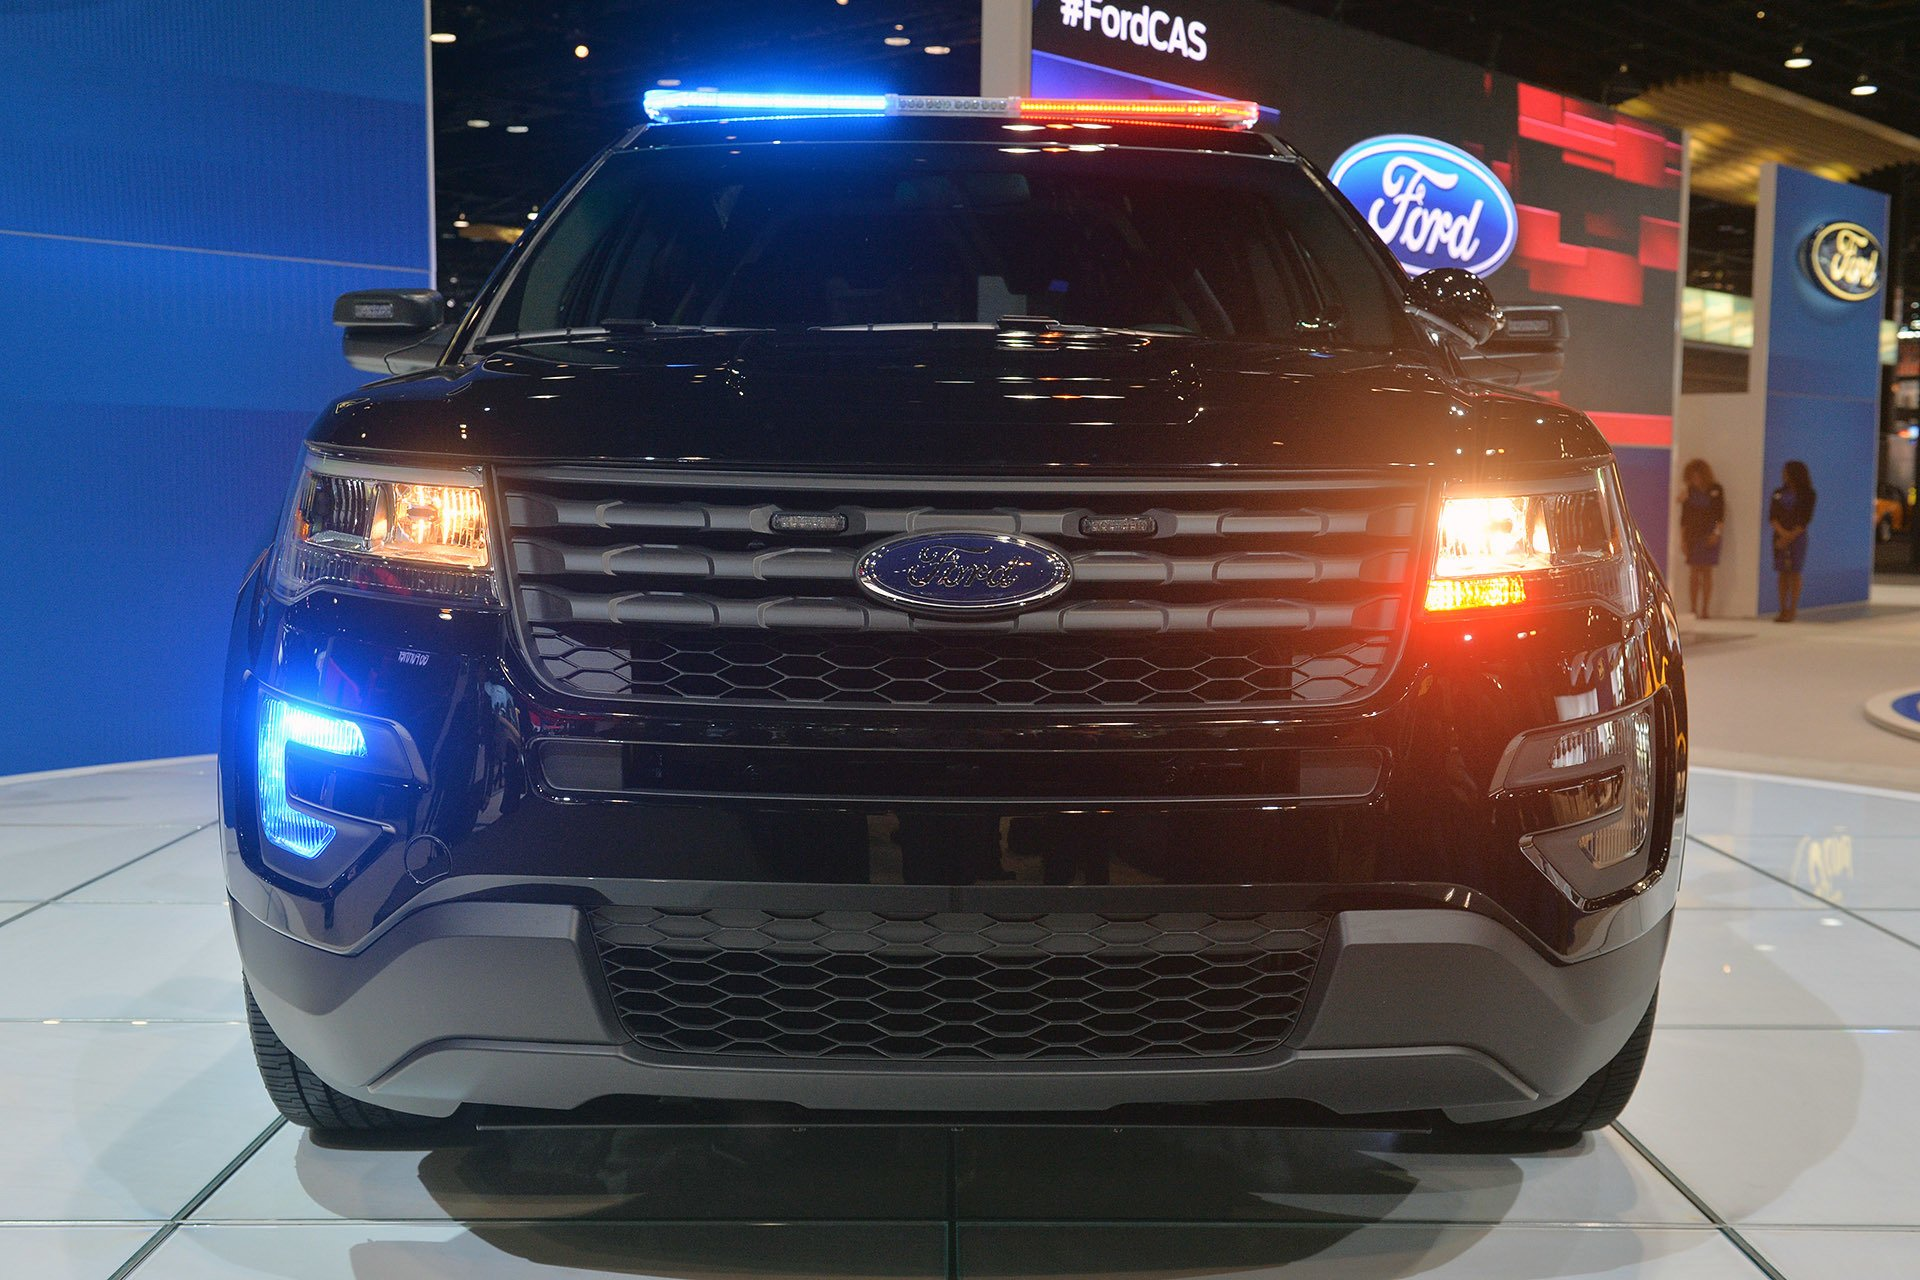 2016 Ford Police Interceptor Utility photo - 2